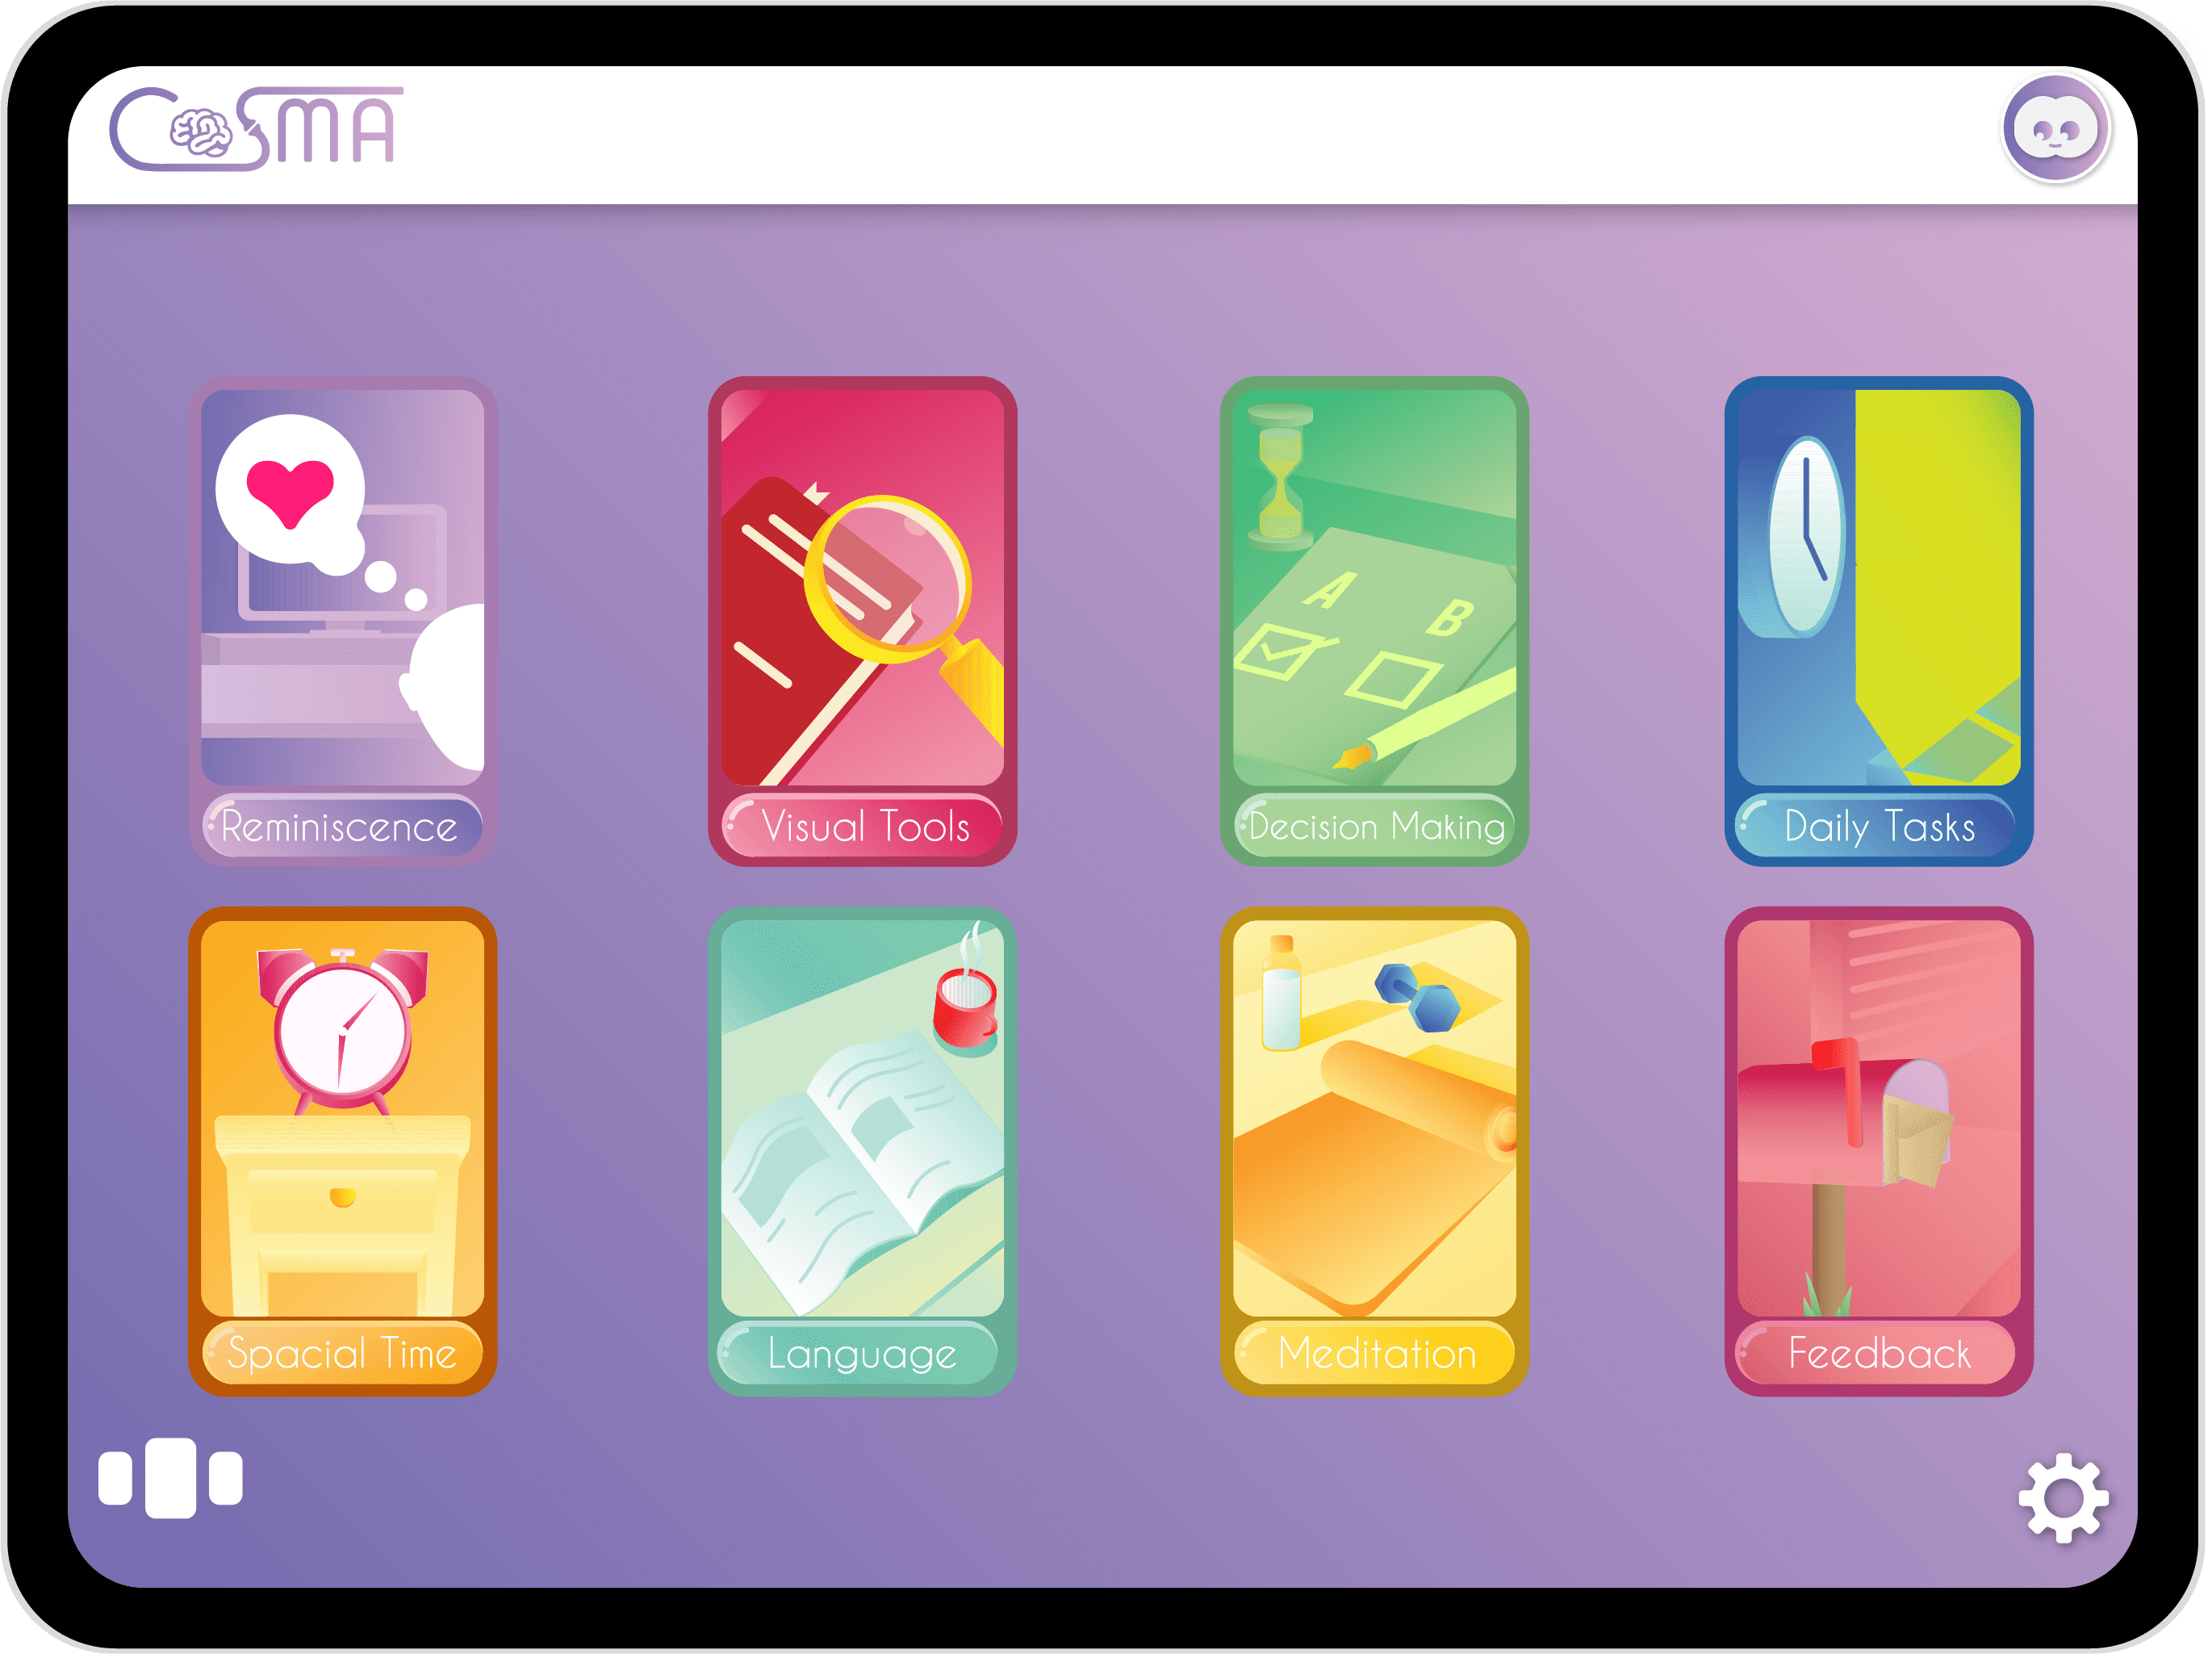 COSMA Dementia product modules